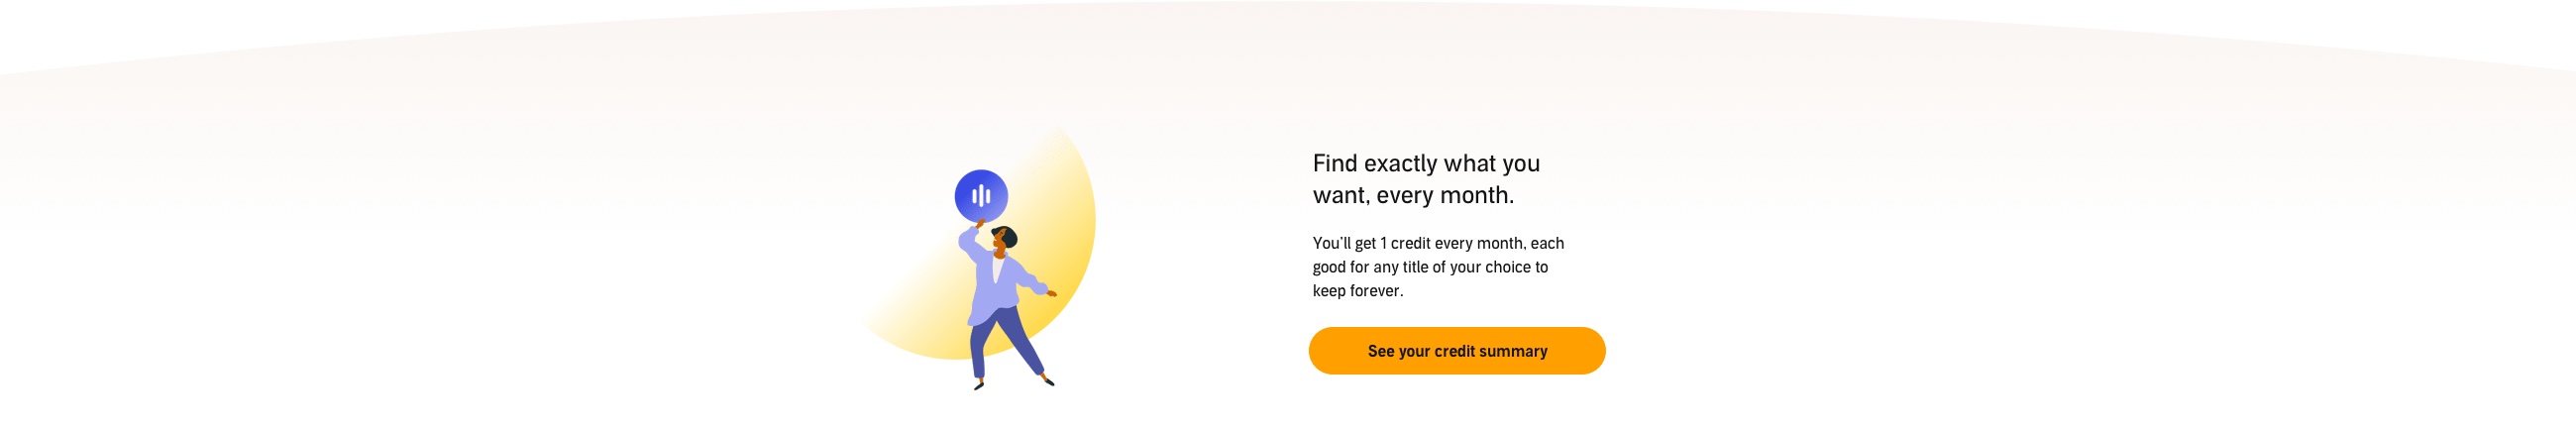 See Your Credit Summary